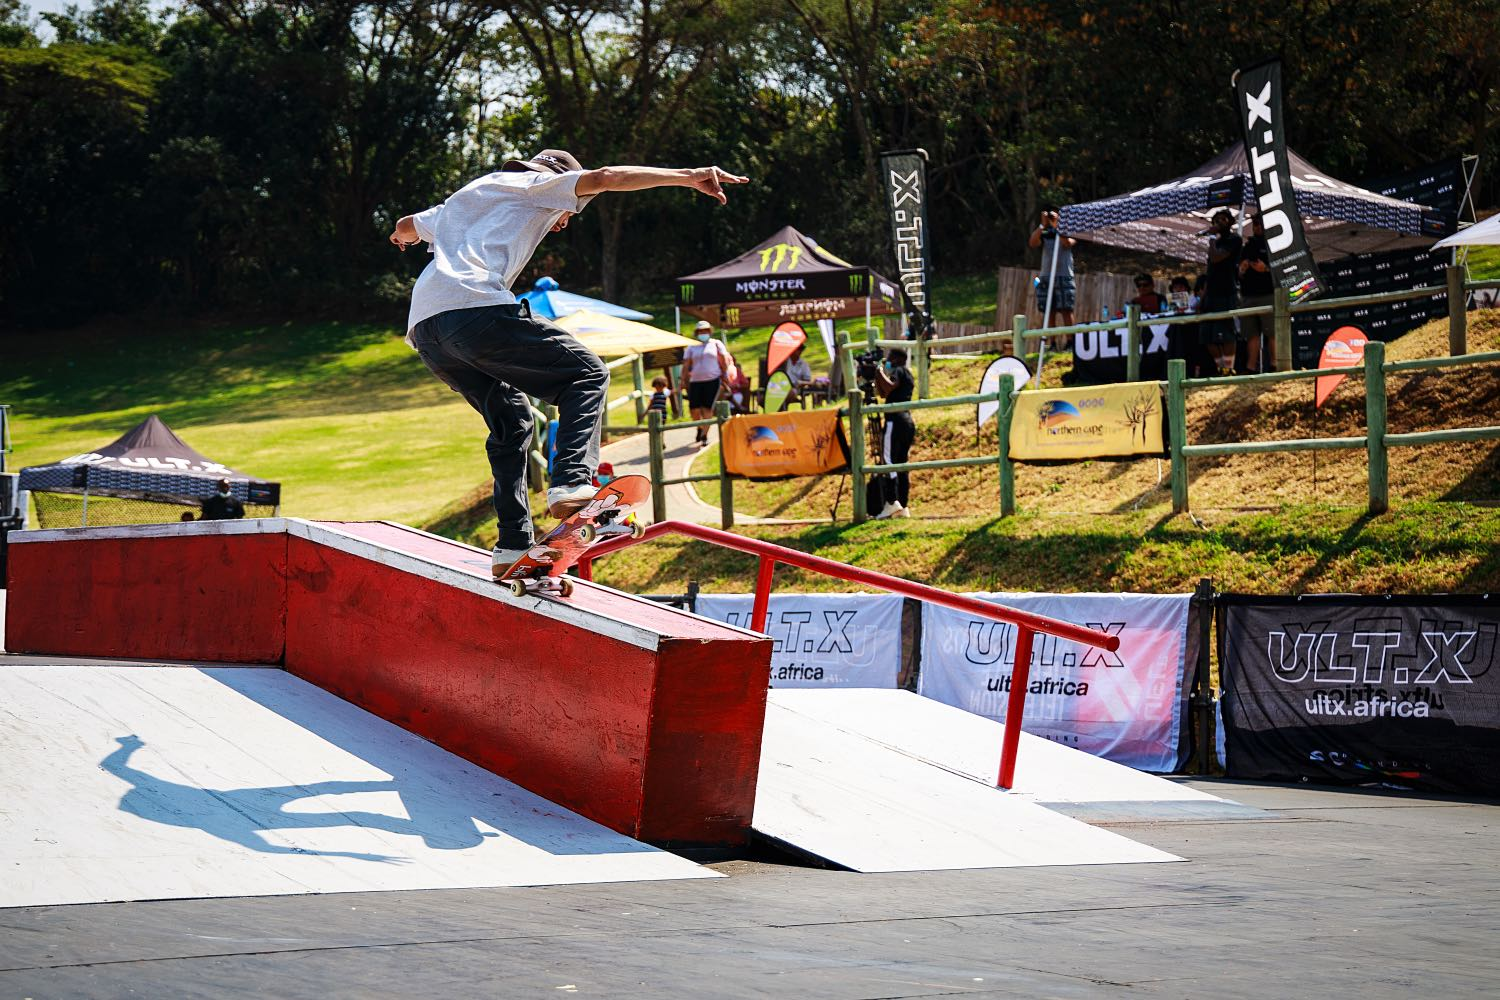 Allan Adams competing in the Skate contest at ULT.X 2021